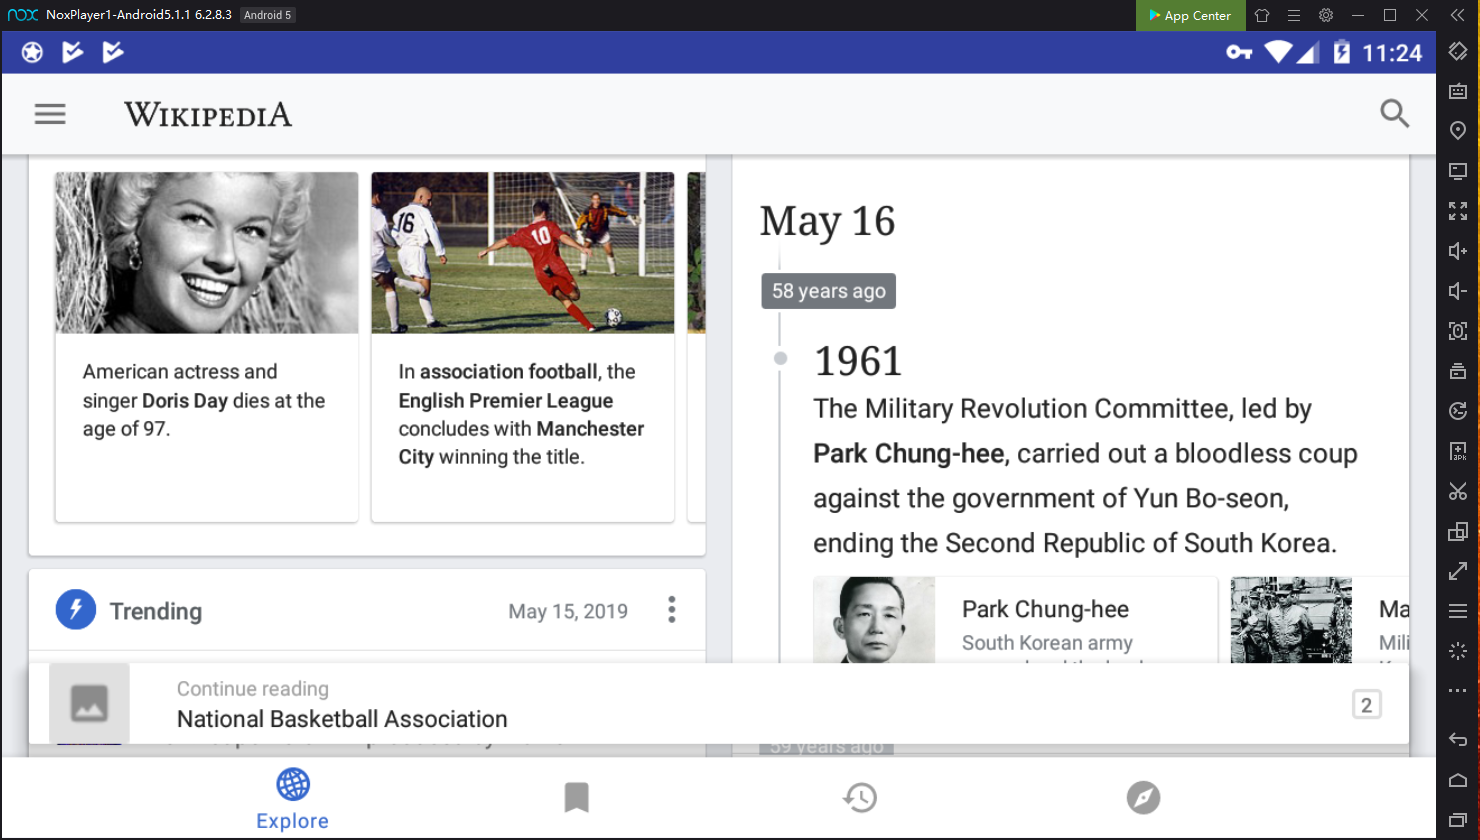 Download Wikipedia On PC With NoxPlayer